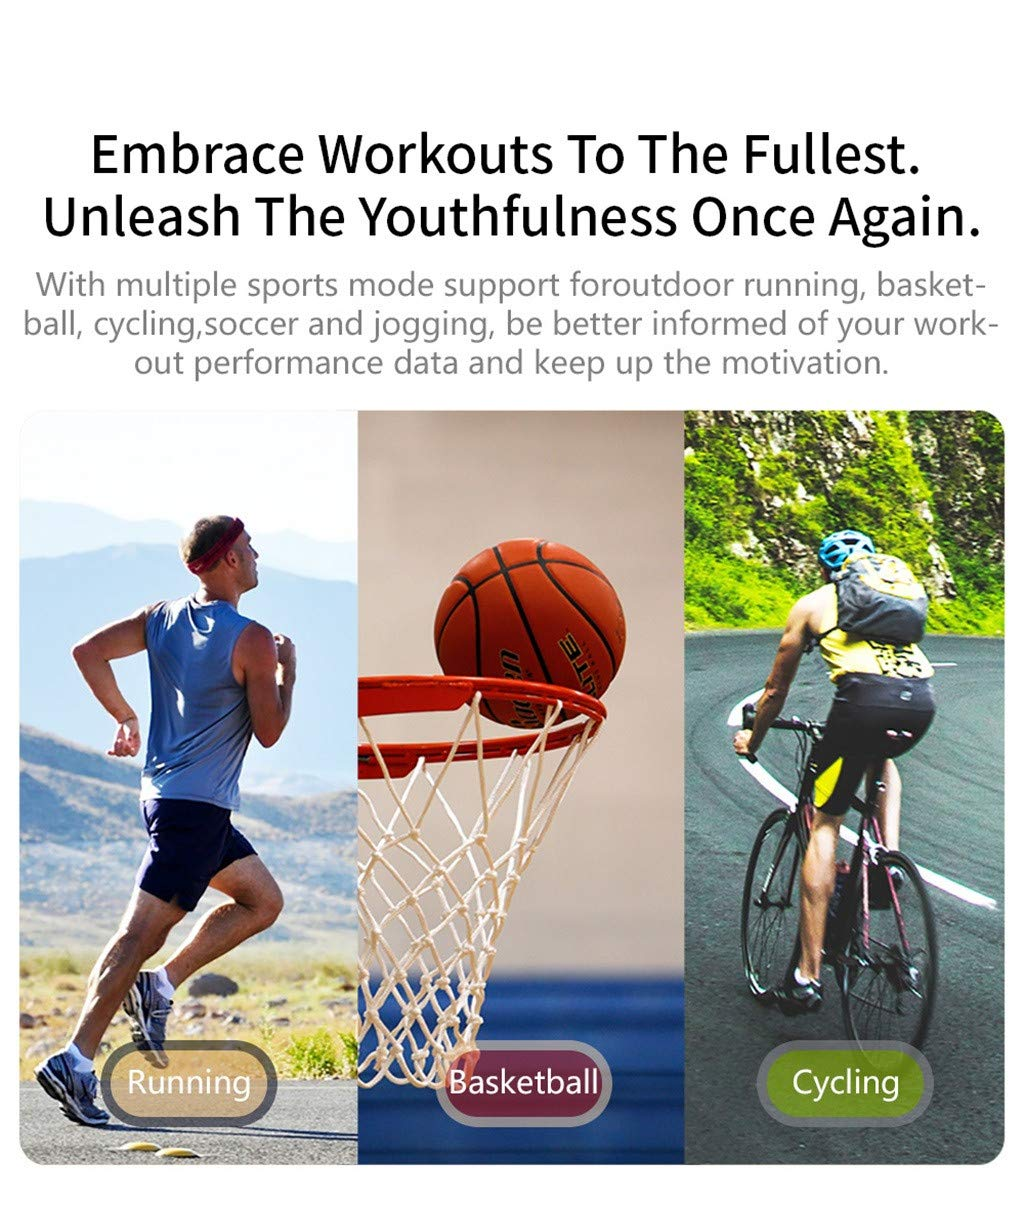 For iOS Android, Waterproof Sport Smart Watch Fitness Activity Blood Pressure Heart Rate Sleep Monitoring Smart Bracelet (A) by YNAA (Image #4)